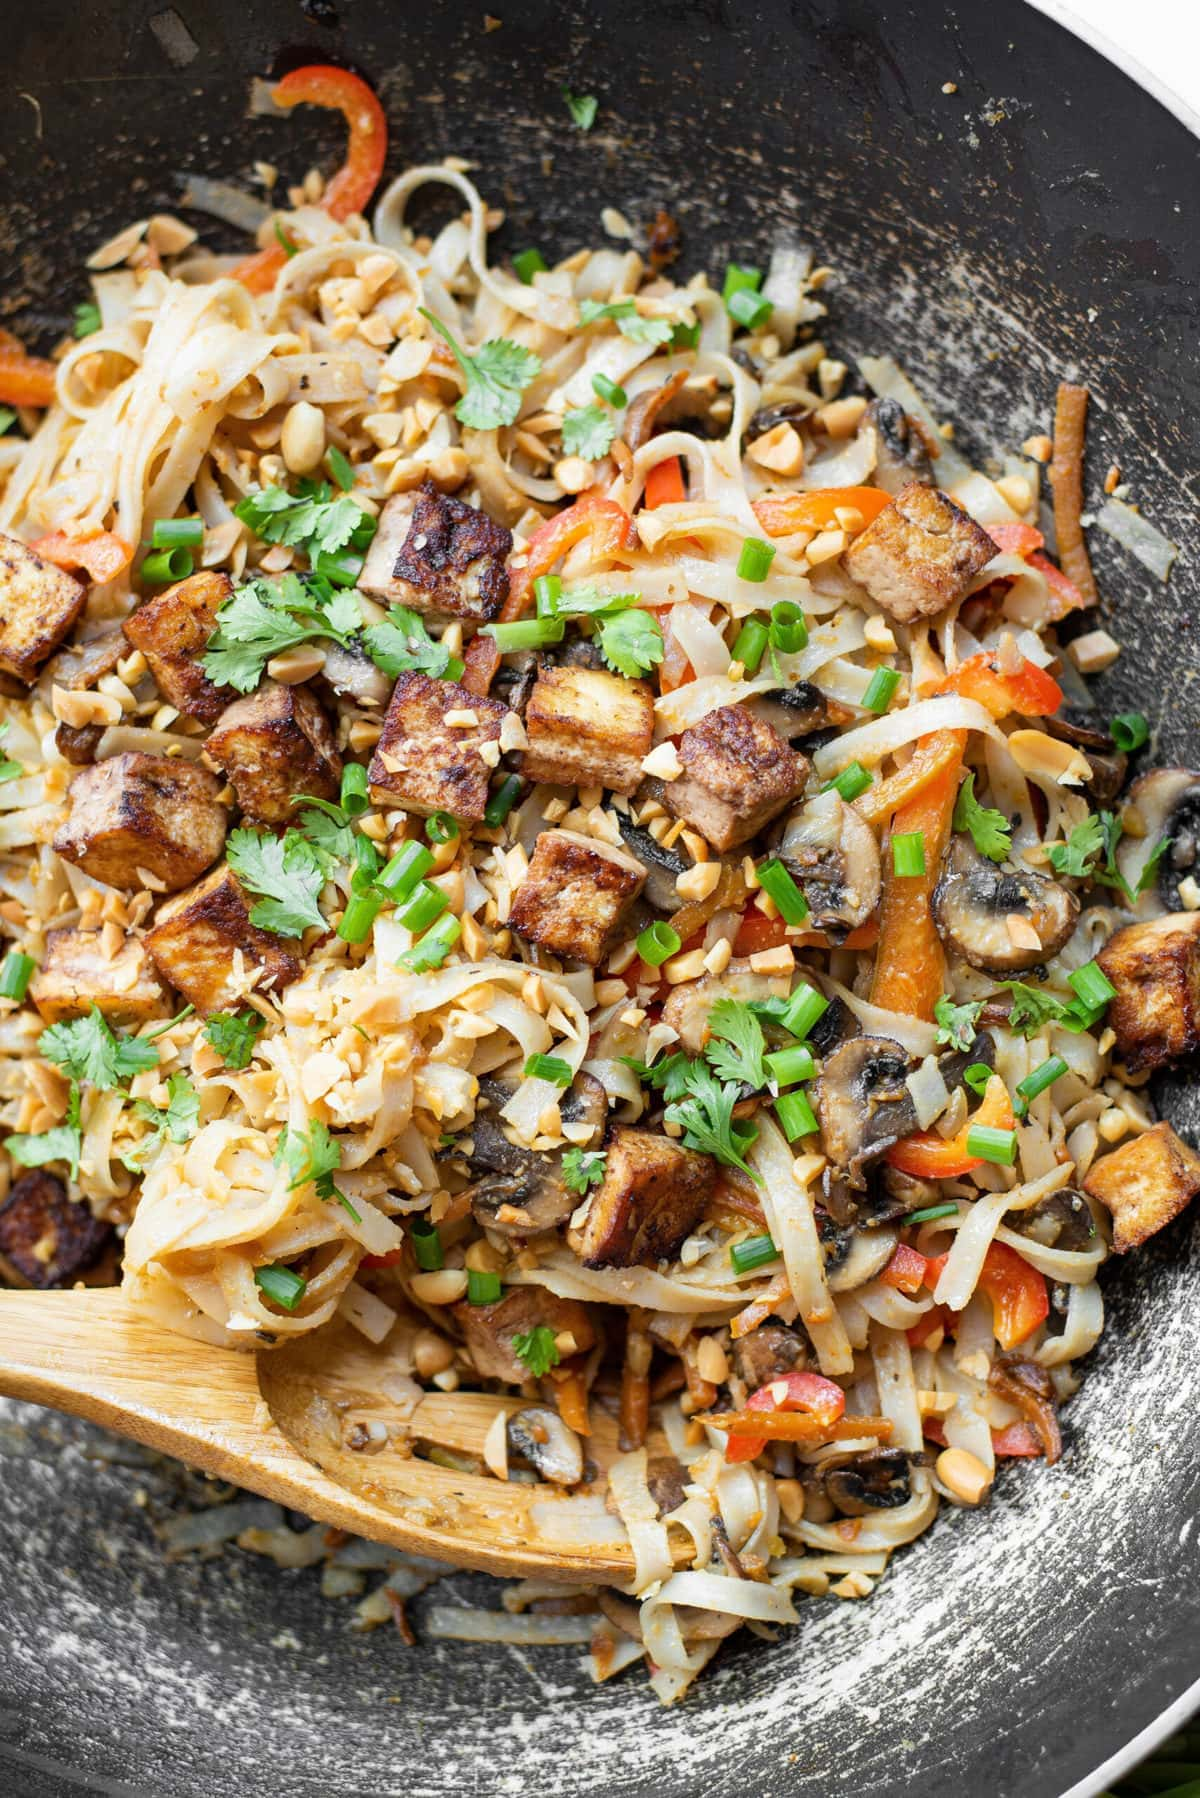 pad thai noodles with vegetables and tofu in a skillet